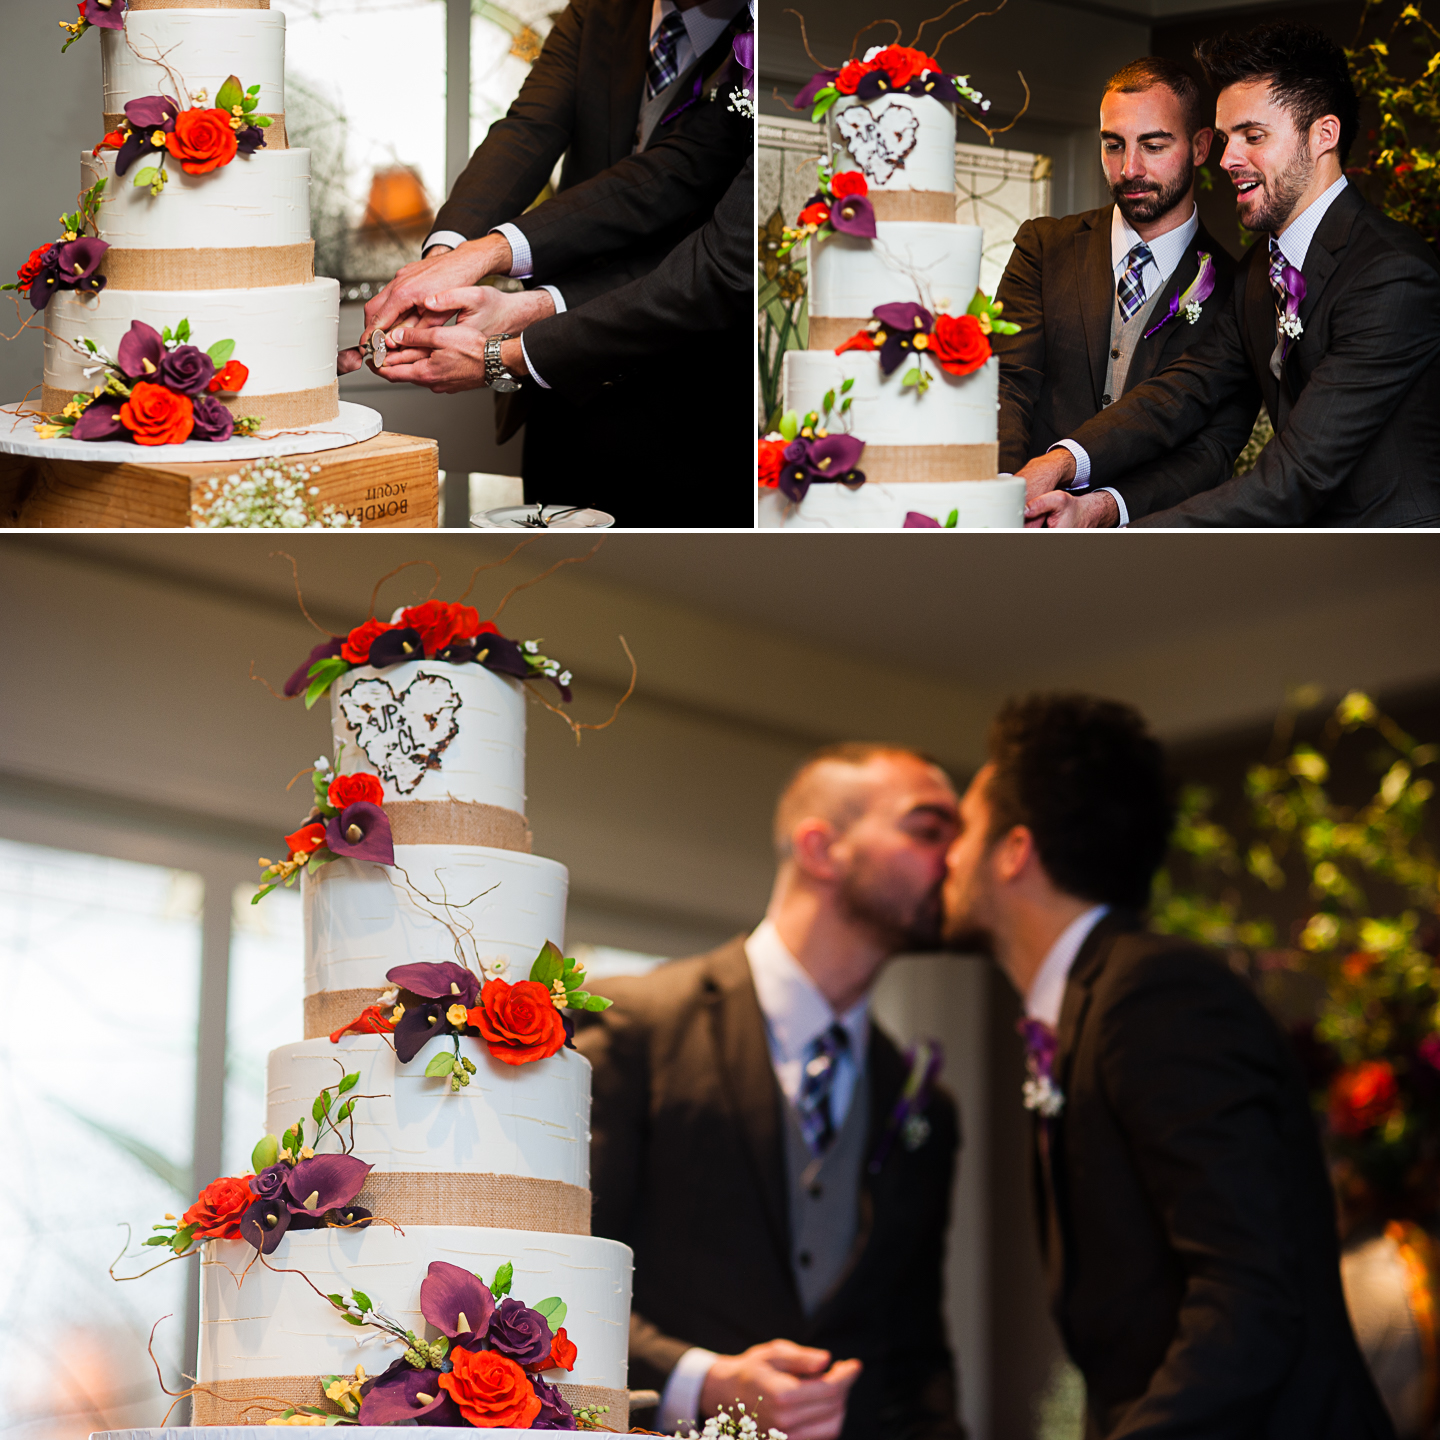 cake cutting with two handsome grooms